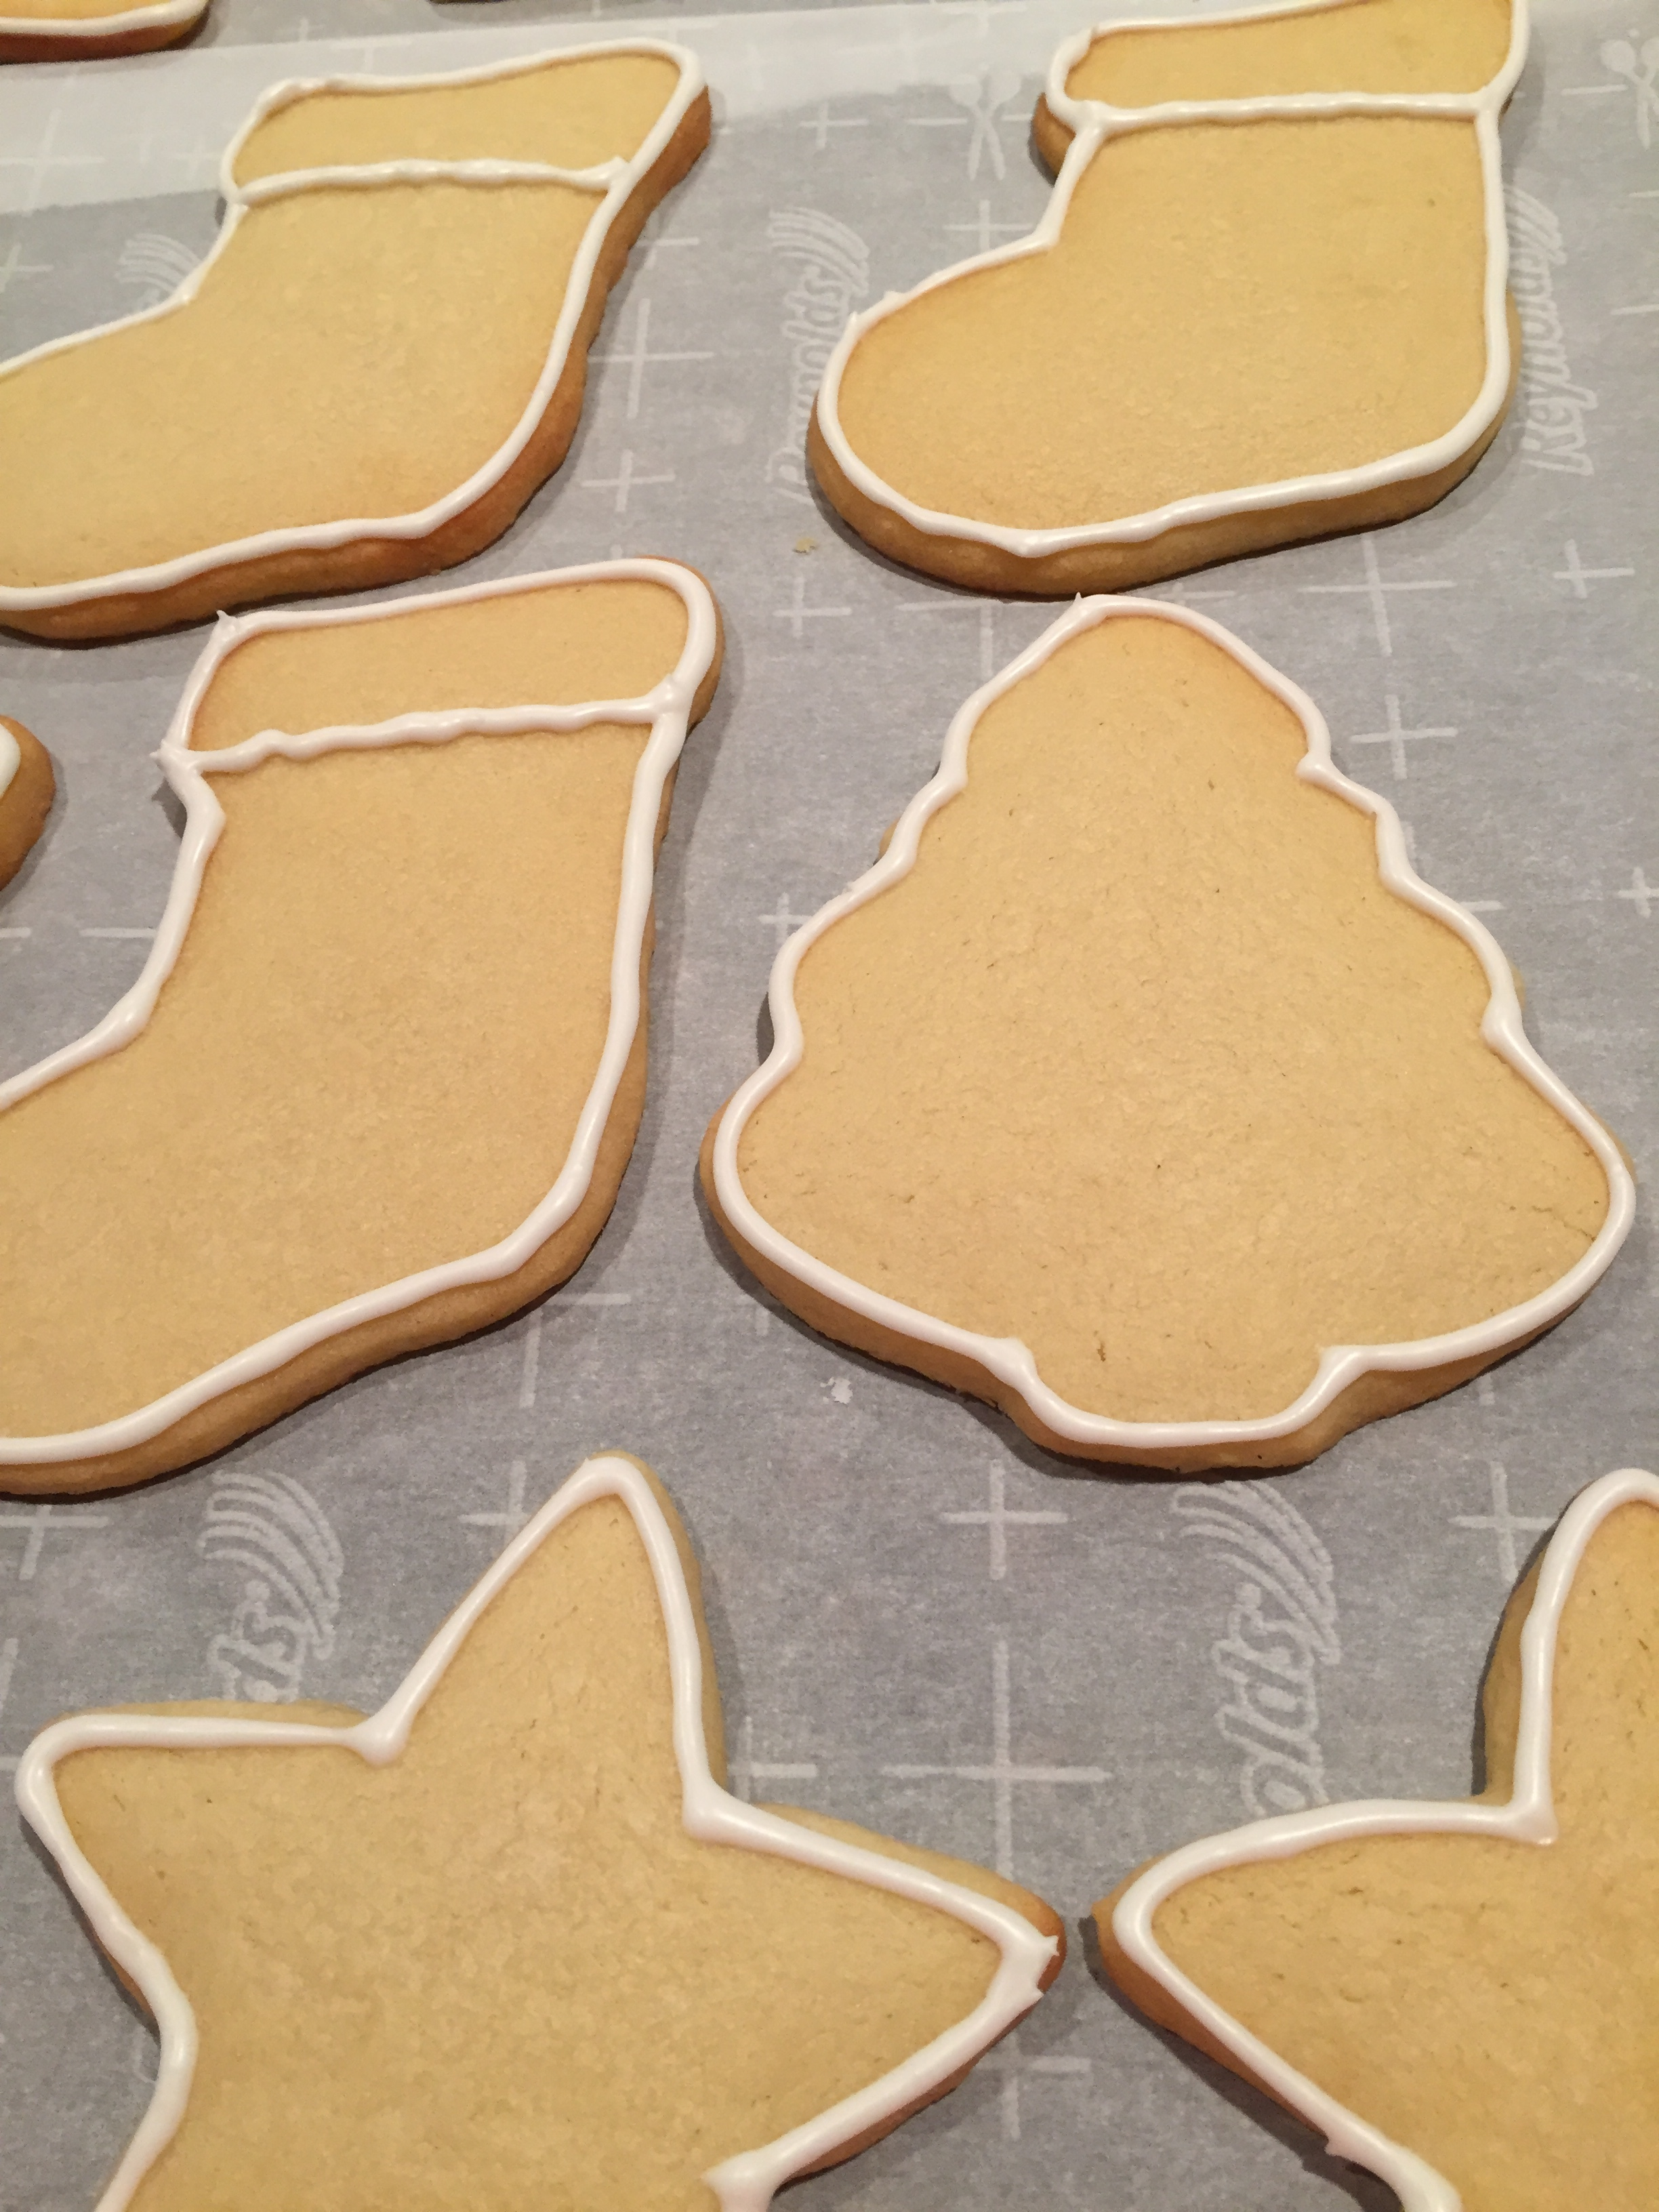 royal icing with lemon juice sugar cookies